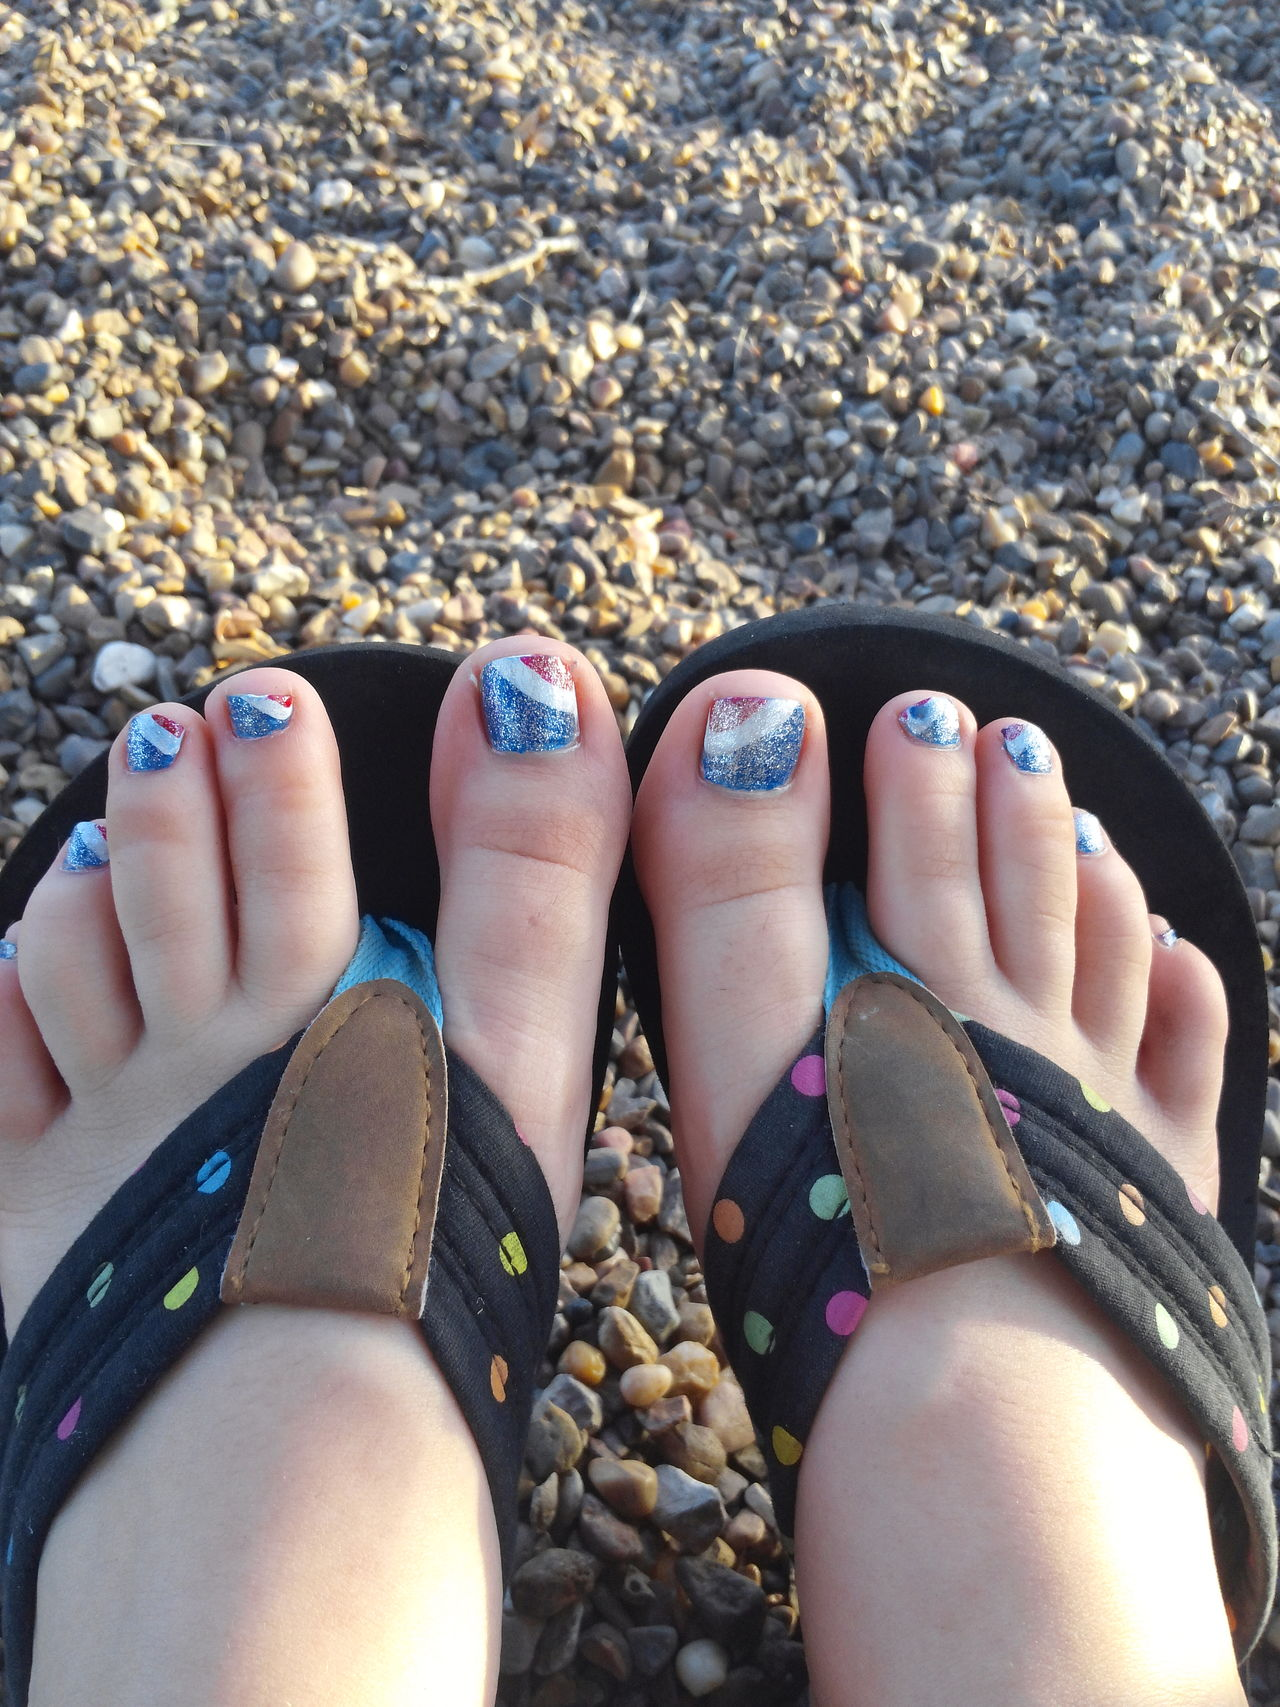 Corpus Christi, Tx Texas Corpus Christi Toes Feet Nail Art Nails Nailpolish 4th Of July July4th July Independence Day